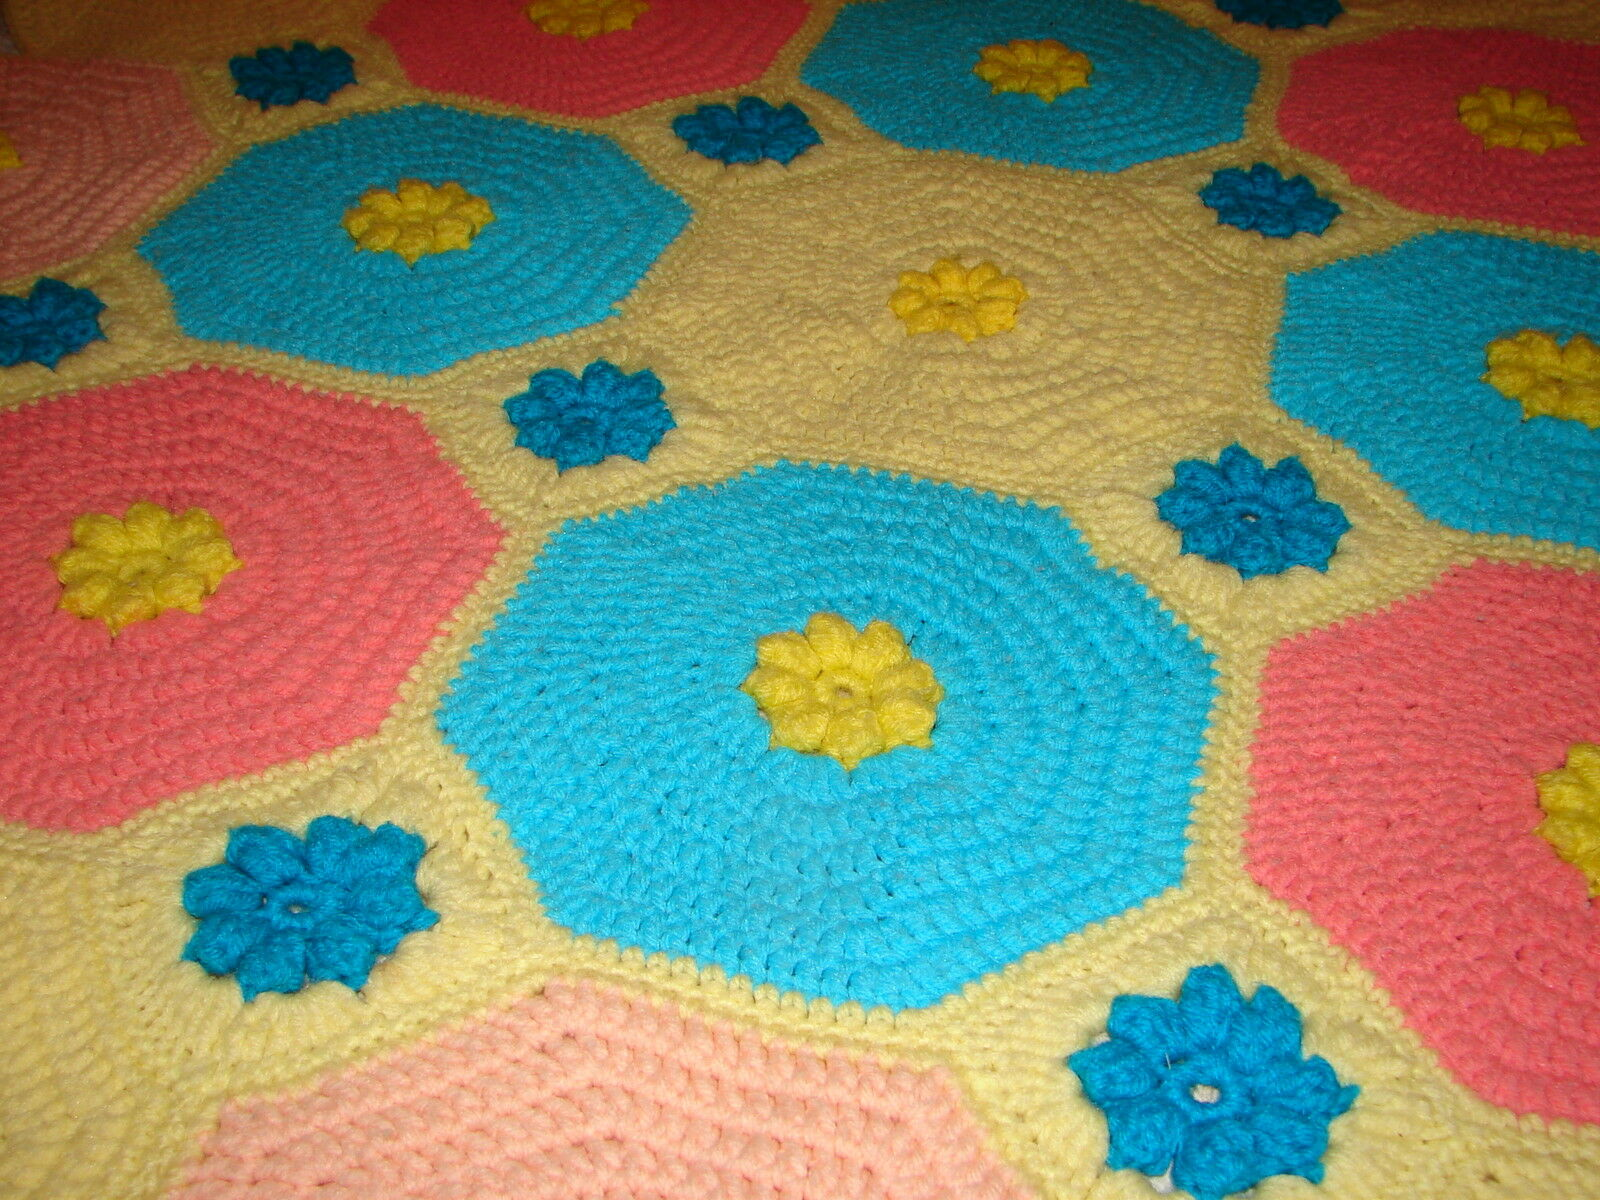 Handmade Handcrafted Crochet Afghan Throw Blanket  Floral with Multi-color